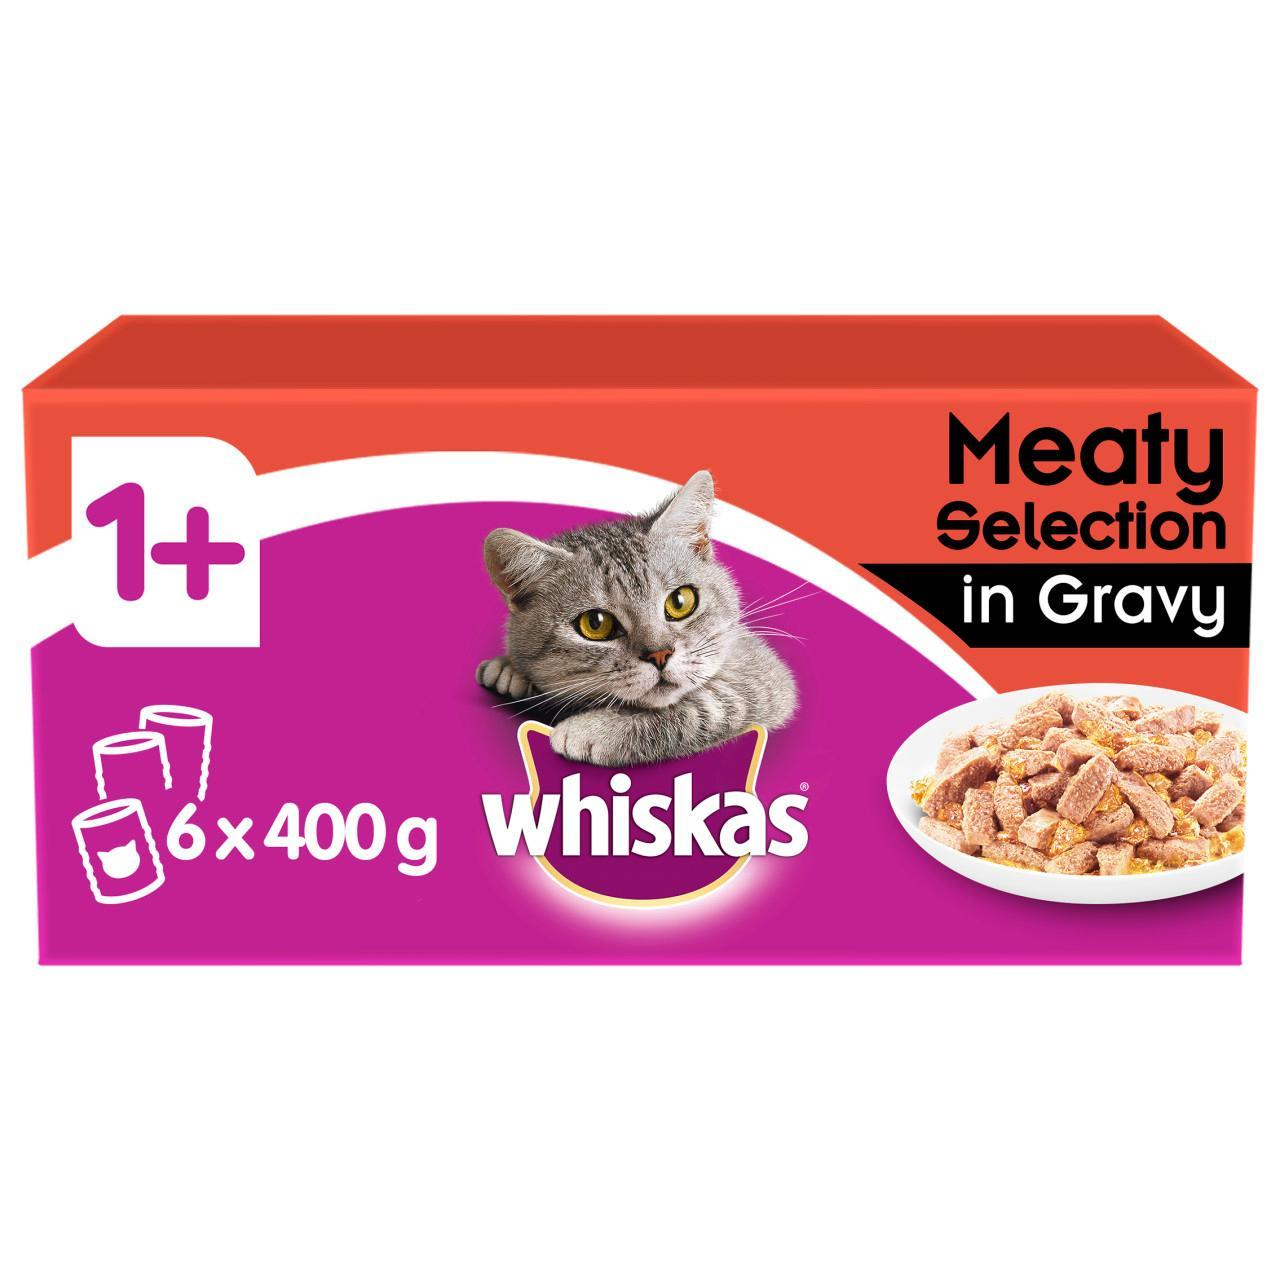 An image of Whiskas Cat Tins Meat in Gravy